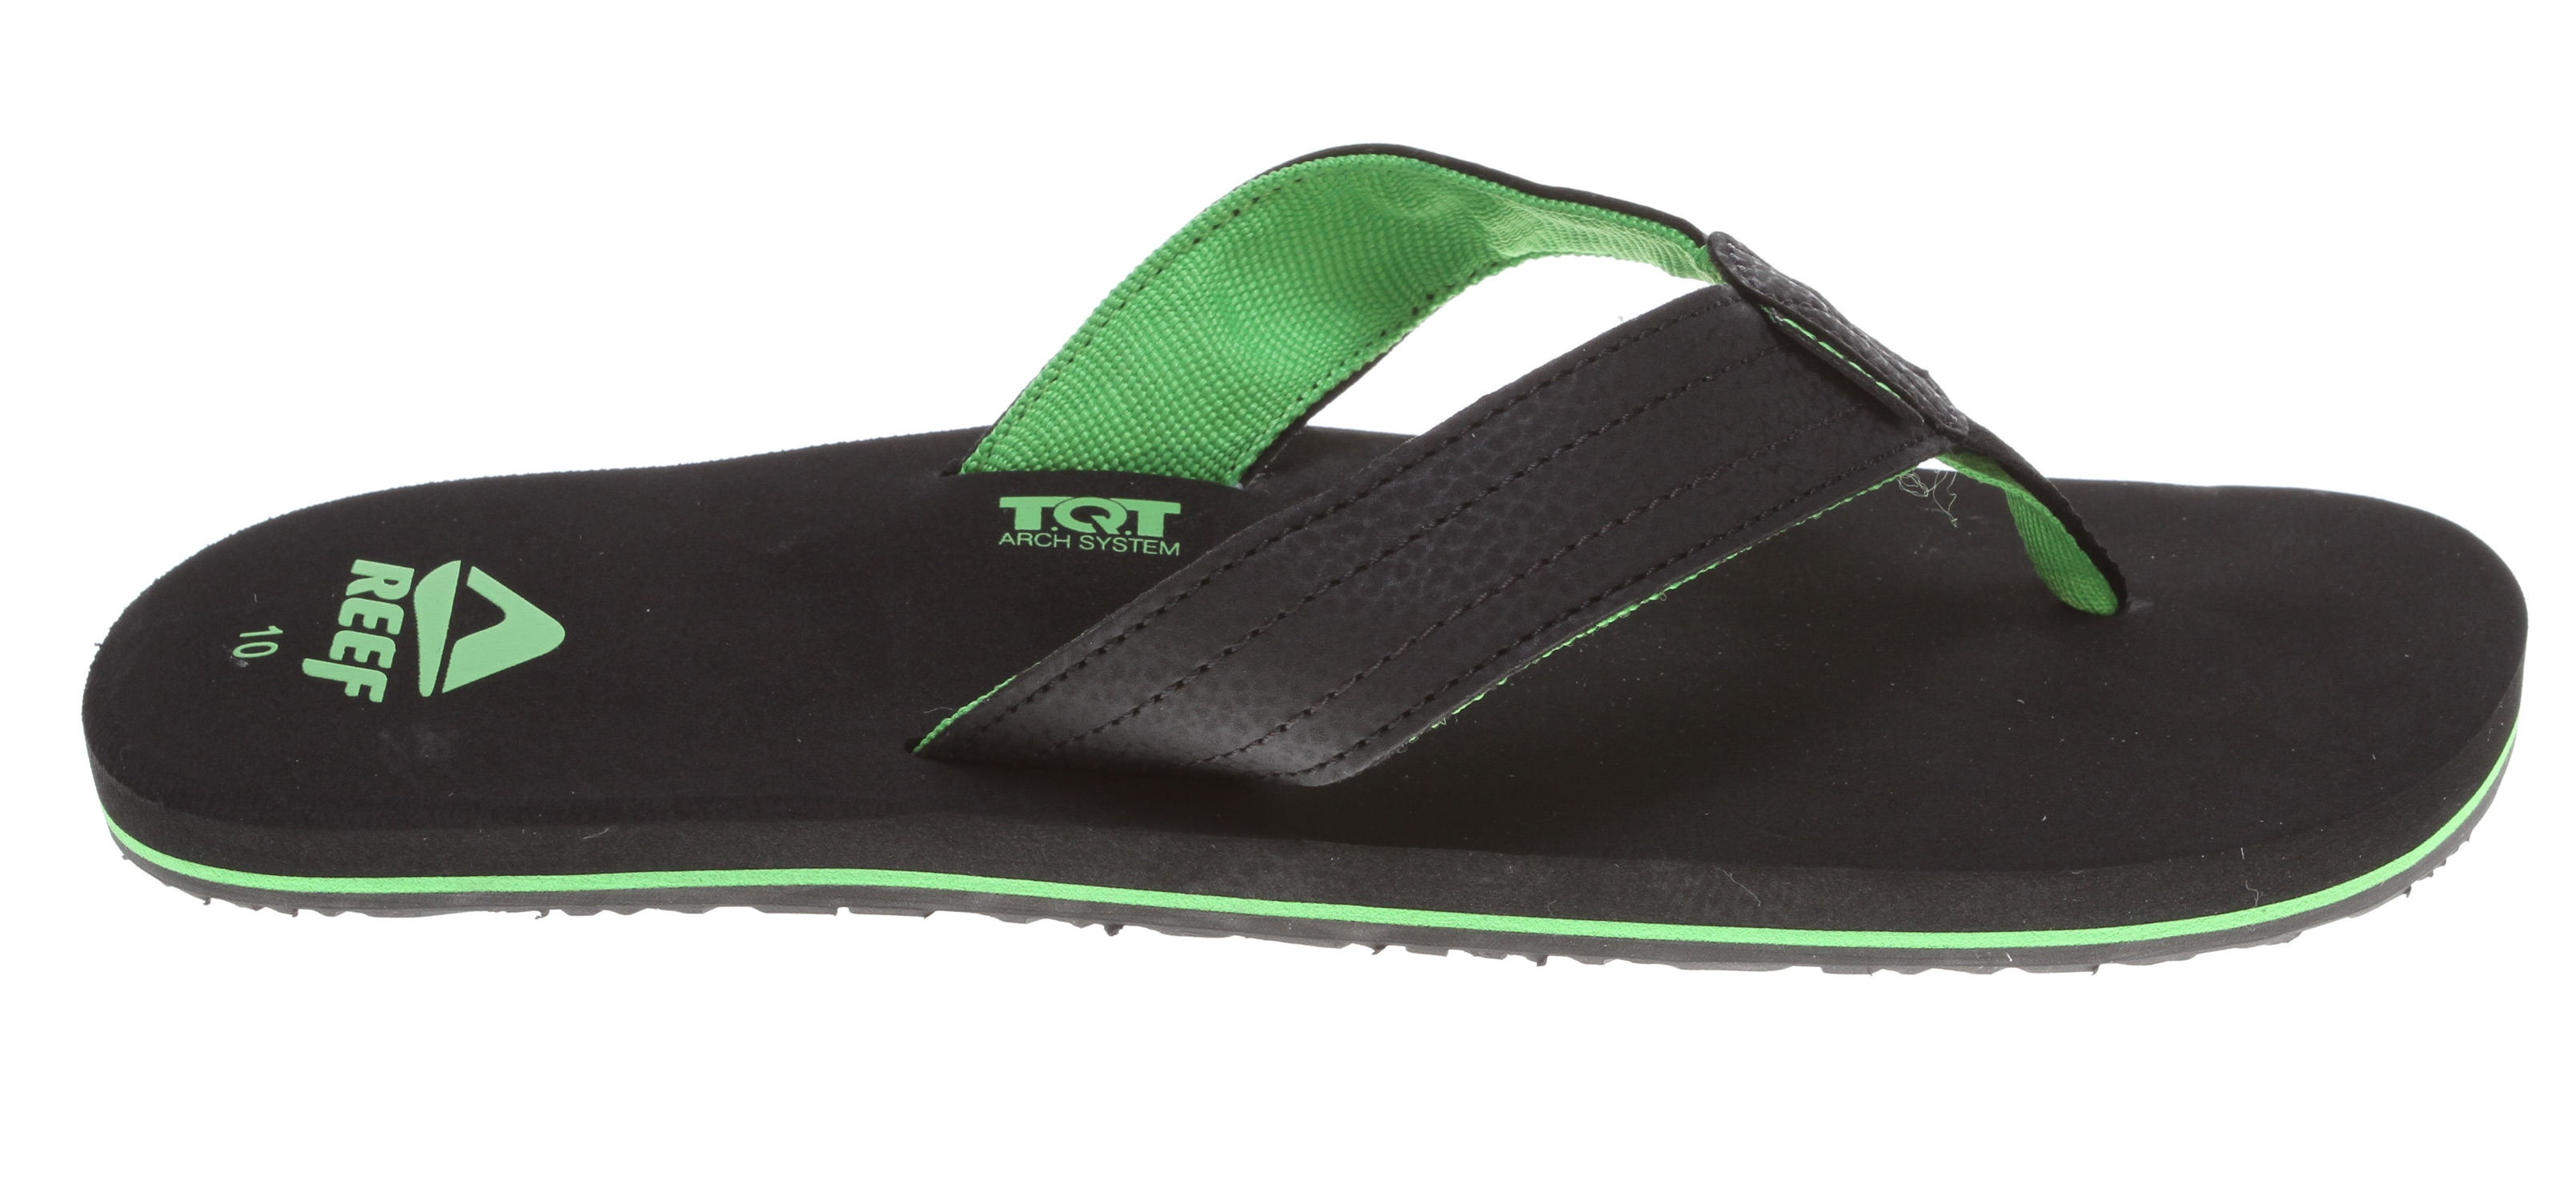 "Surf These Reef Quencha Tqt Sandals have a ""QT Pie"" construction that is adorable and durable. The Molded TQT technology features a ""Thirst Quenching Technology"" arch system that makes these sandals ideal for beach sports and relaxation. With a Grippy Molded Reef rubber outsole and Soft reef polyester woven lining, these aquatic-friendly sandals give you great traction and support for your feet.Key Features of the Reef Quencha Tqt Sandals: Soft, comfortable, water friendly synthetic nubuck upper Soft reef polyester woven lining Super soft EVA footbed with soft peach skin finish and printed logo detail contoured EVA footbed with anatomical arch support Molded TQT ""Thirst Quenching Technology"" arch system Grippy molded Reef rubber outsole - $20.95"